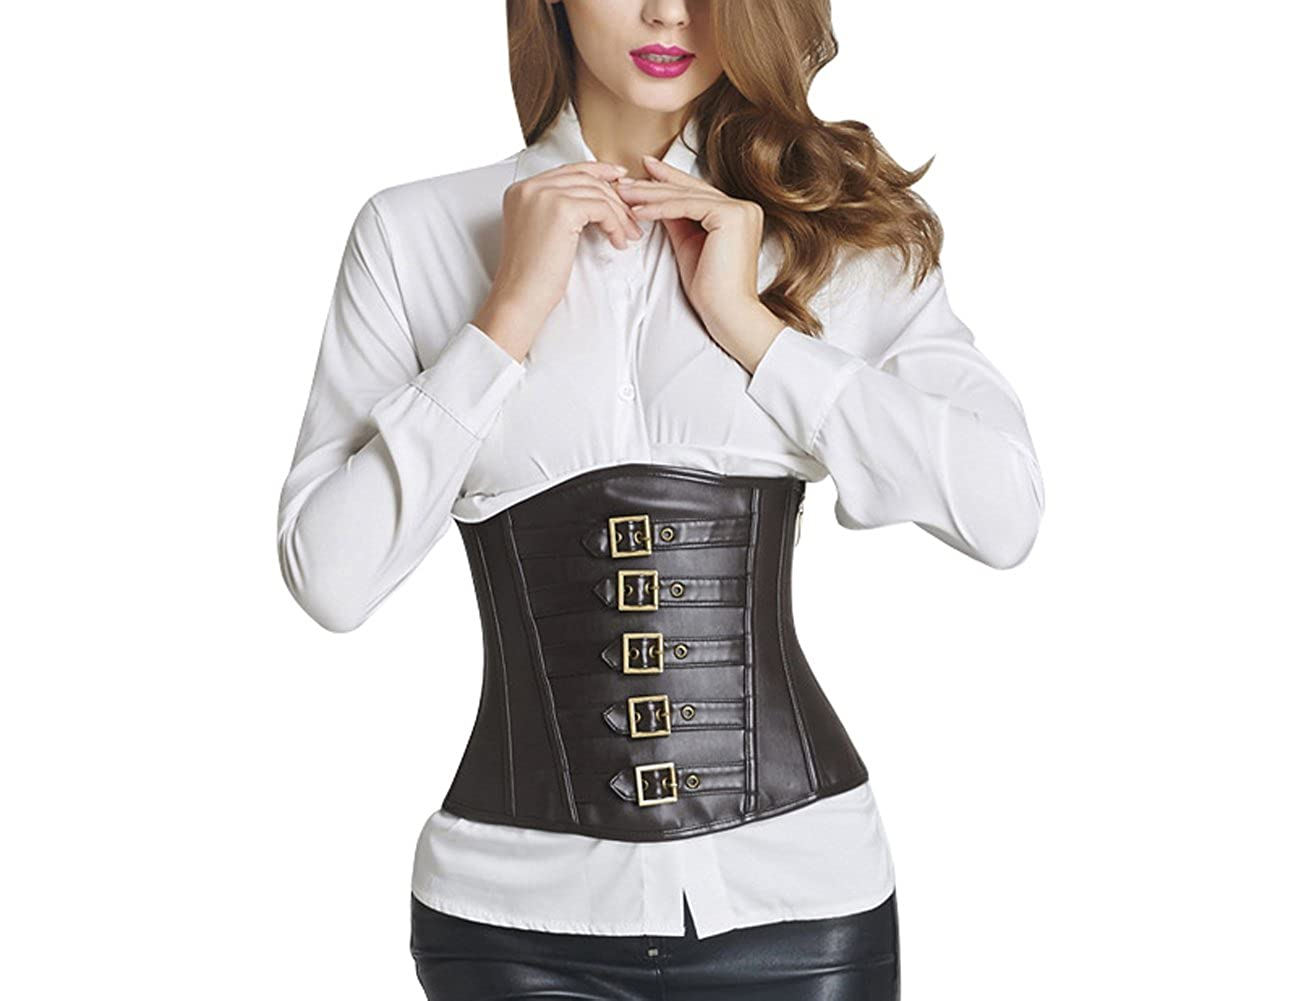 ZAMME Women's Synthetic Leather Lace Up Underbust Corsets And Bustiers Top CNPCR339